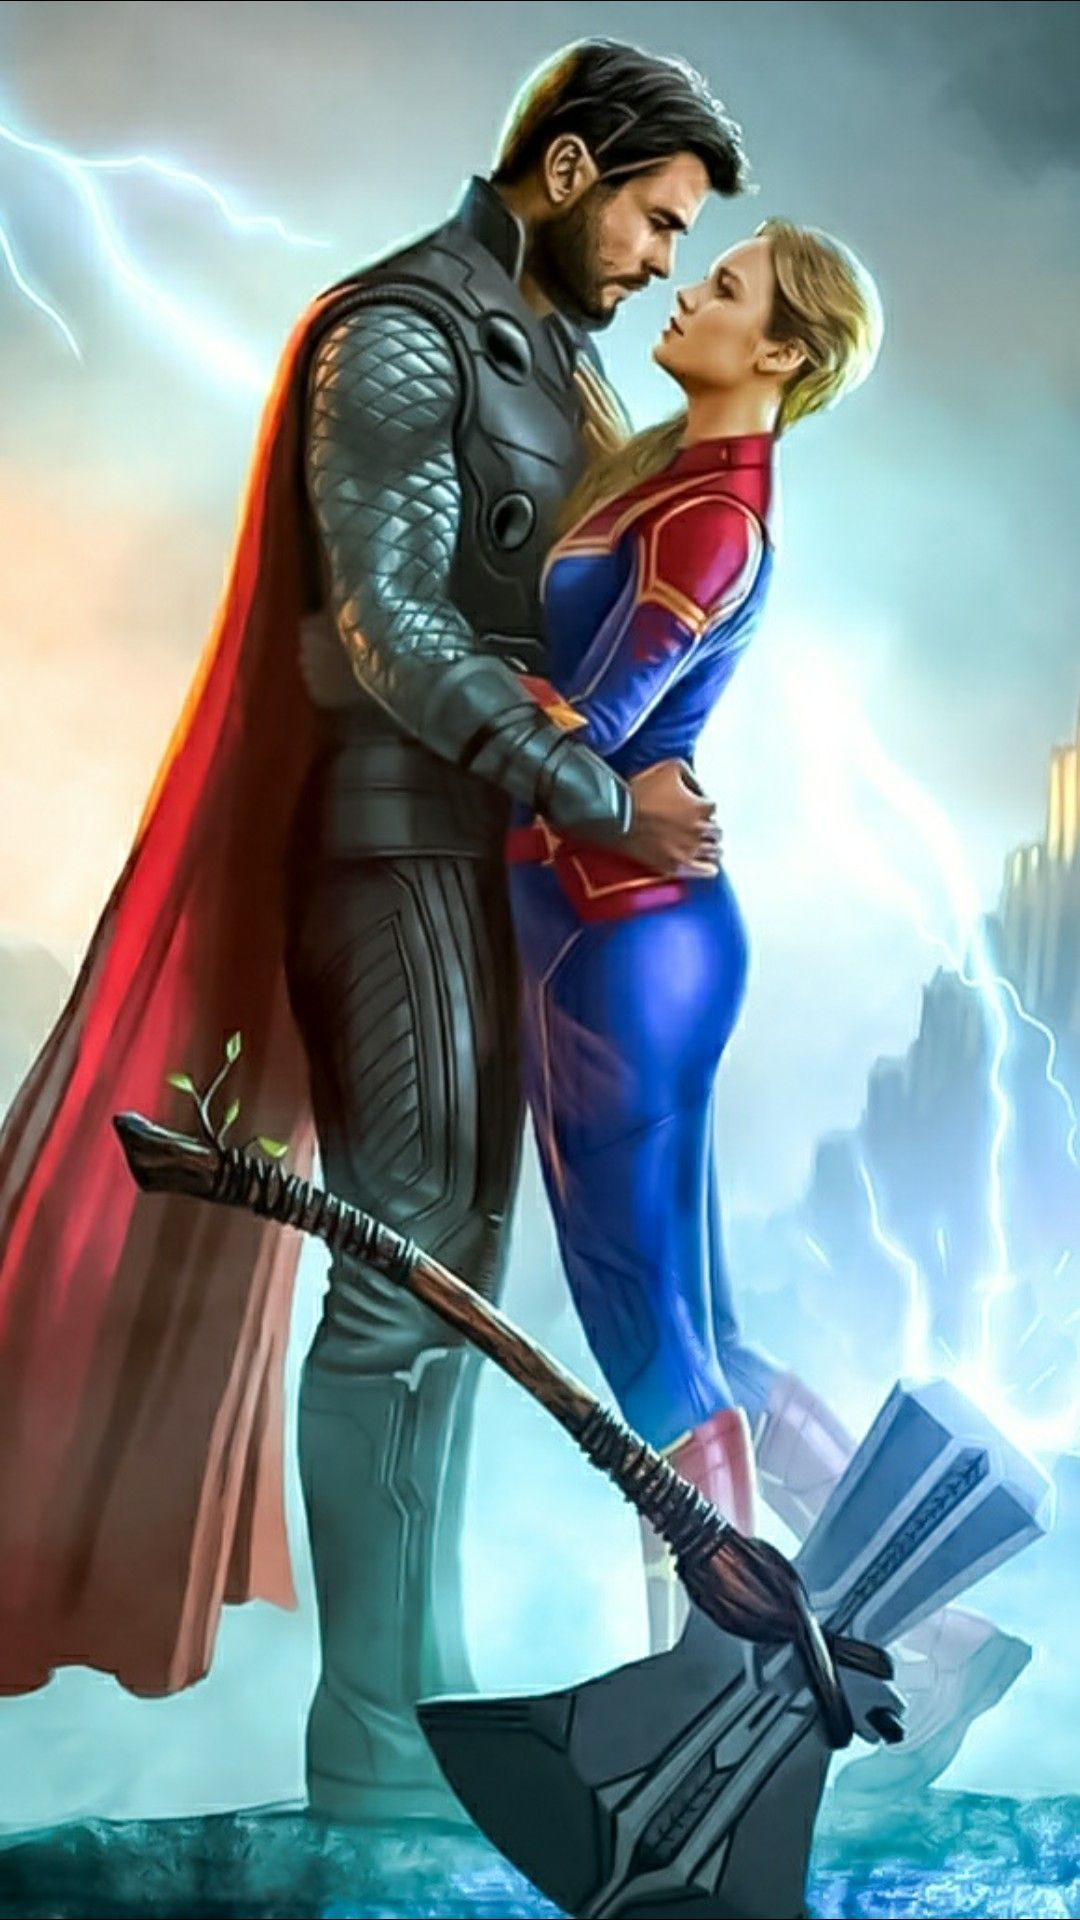 Thor And Captain Marvel Romantic Embrace Marvel And Dc Superheroes Marvel Wallpaper Hd Marvel Wallpaper Trends for thor and captain marvel love